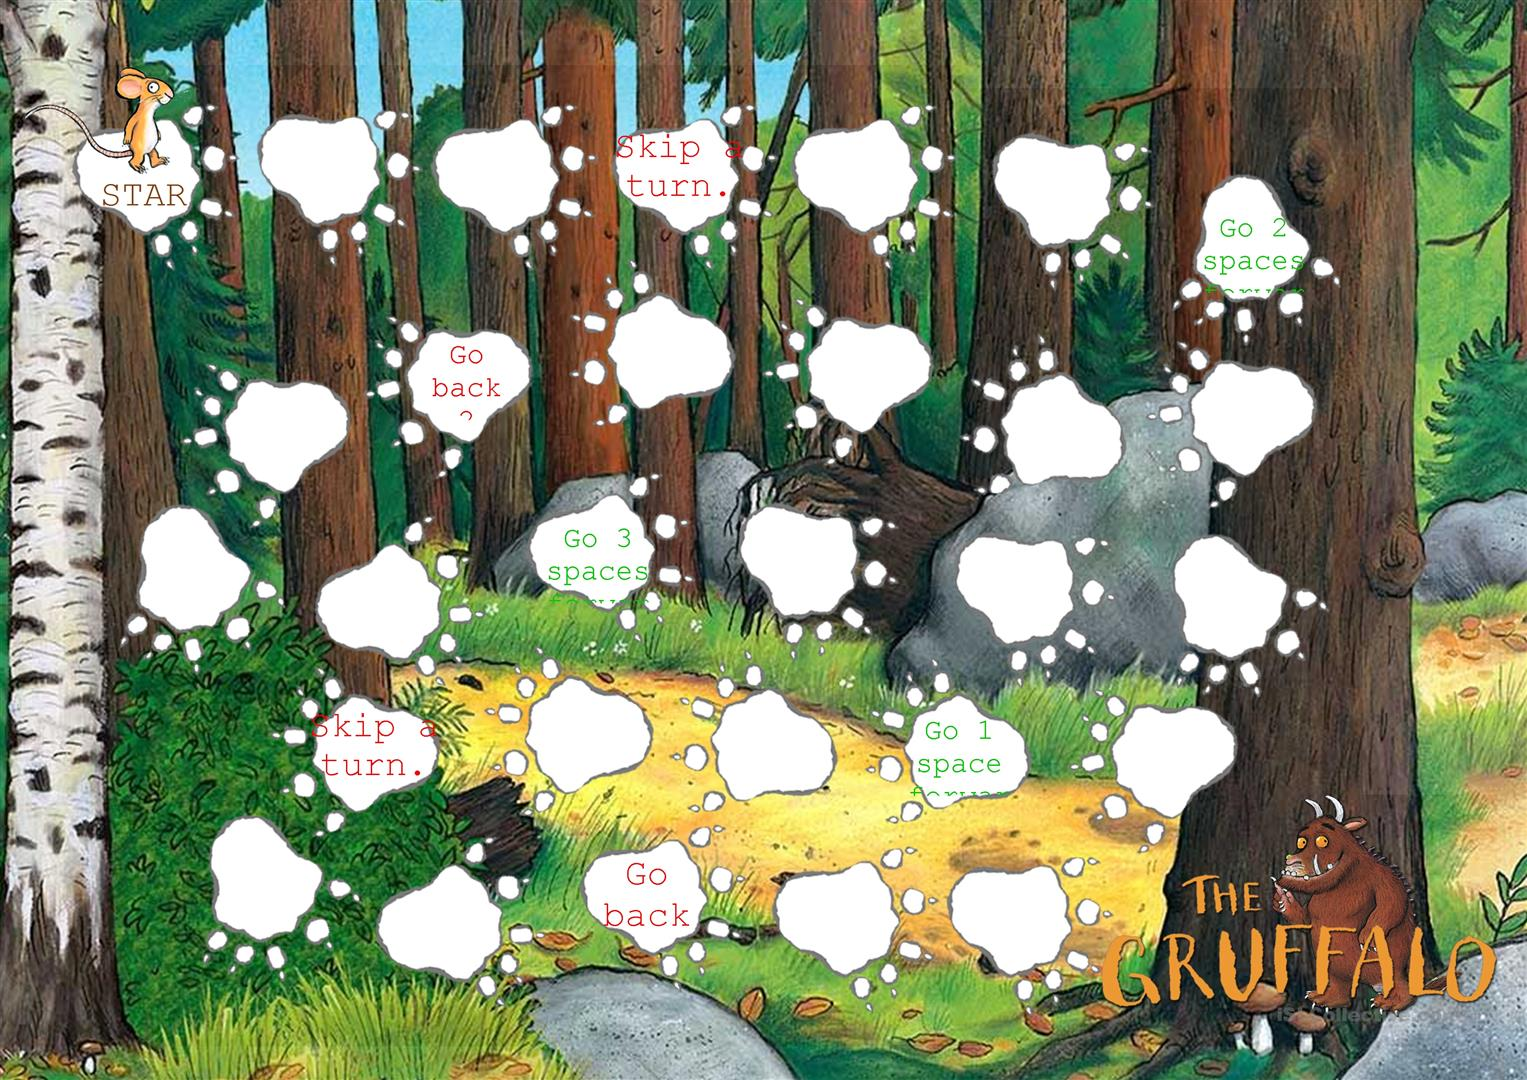 Finding The Gruffalo Part 1